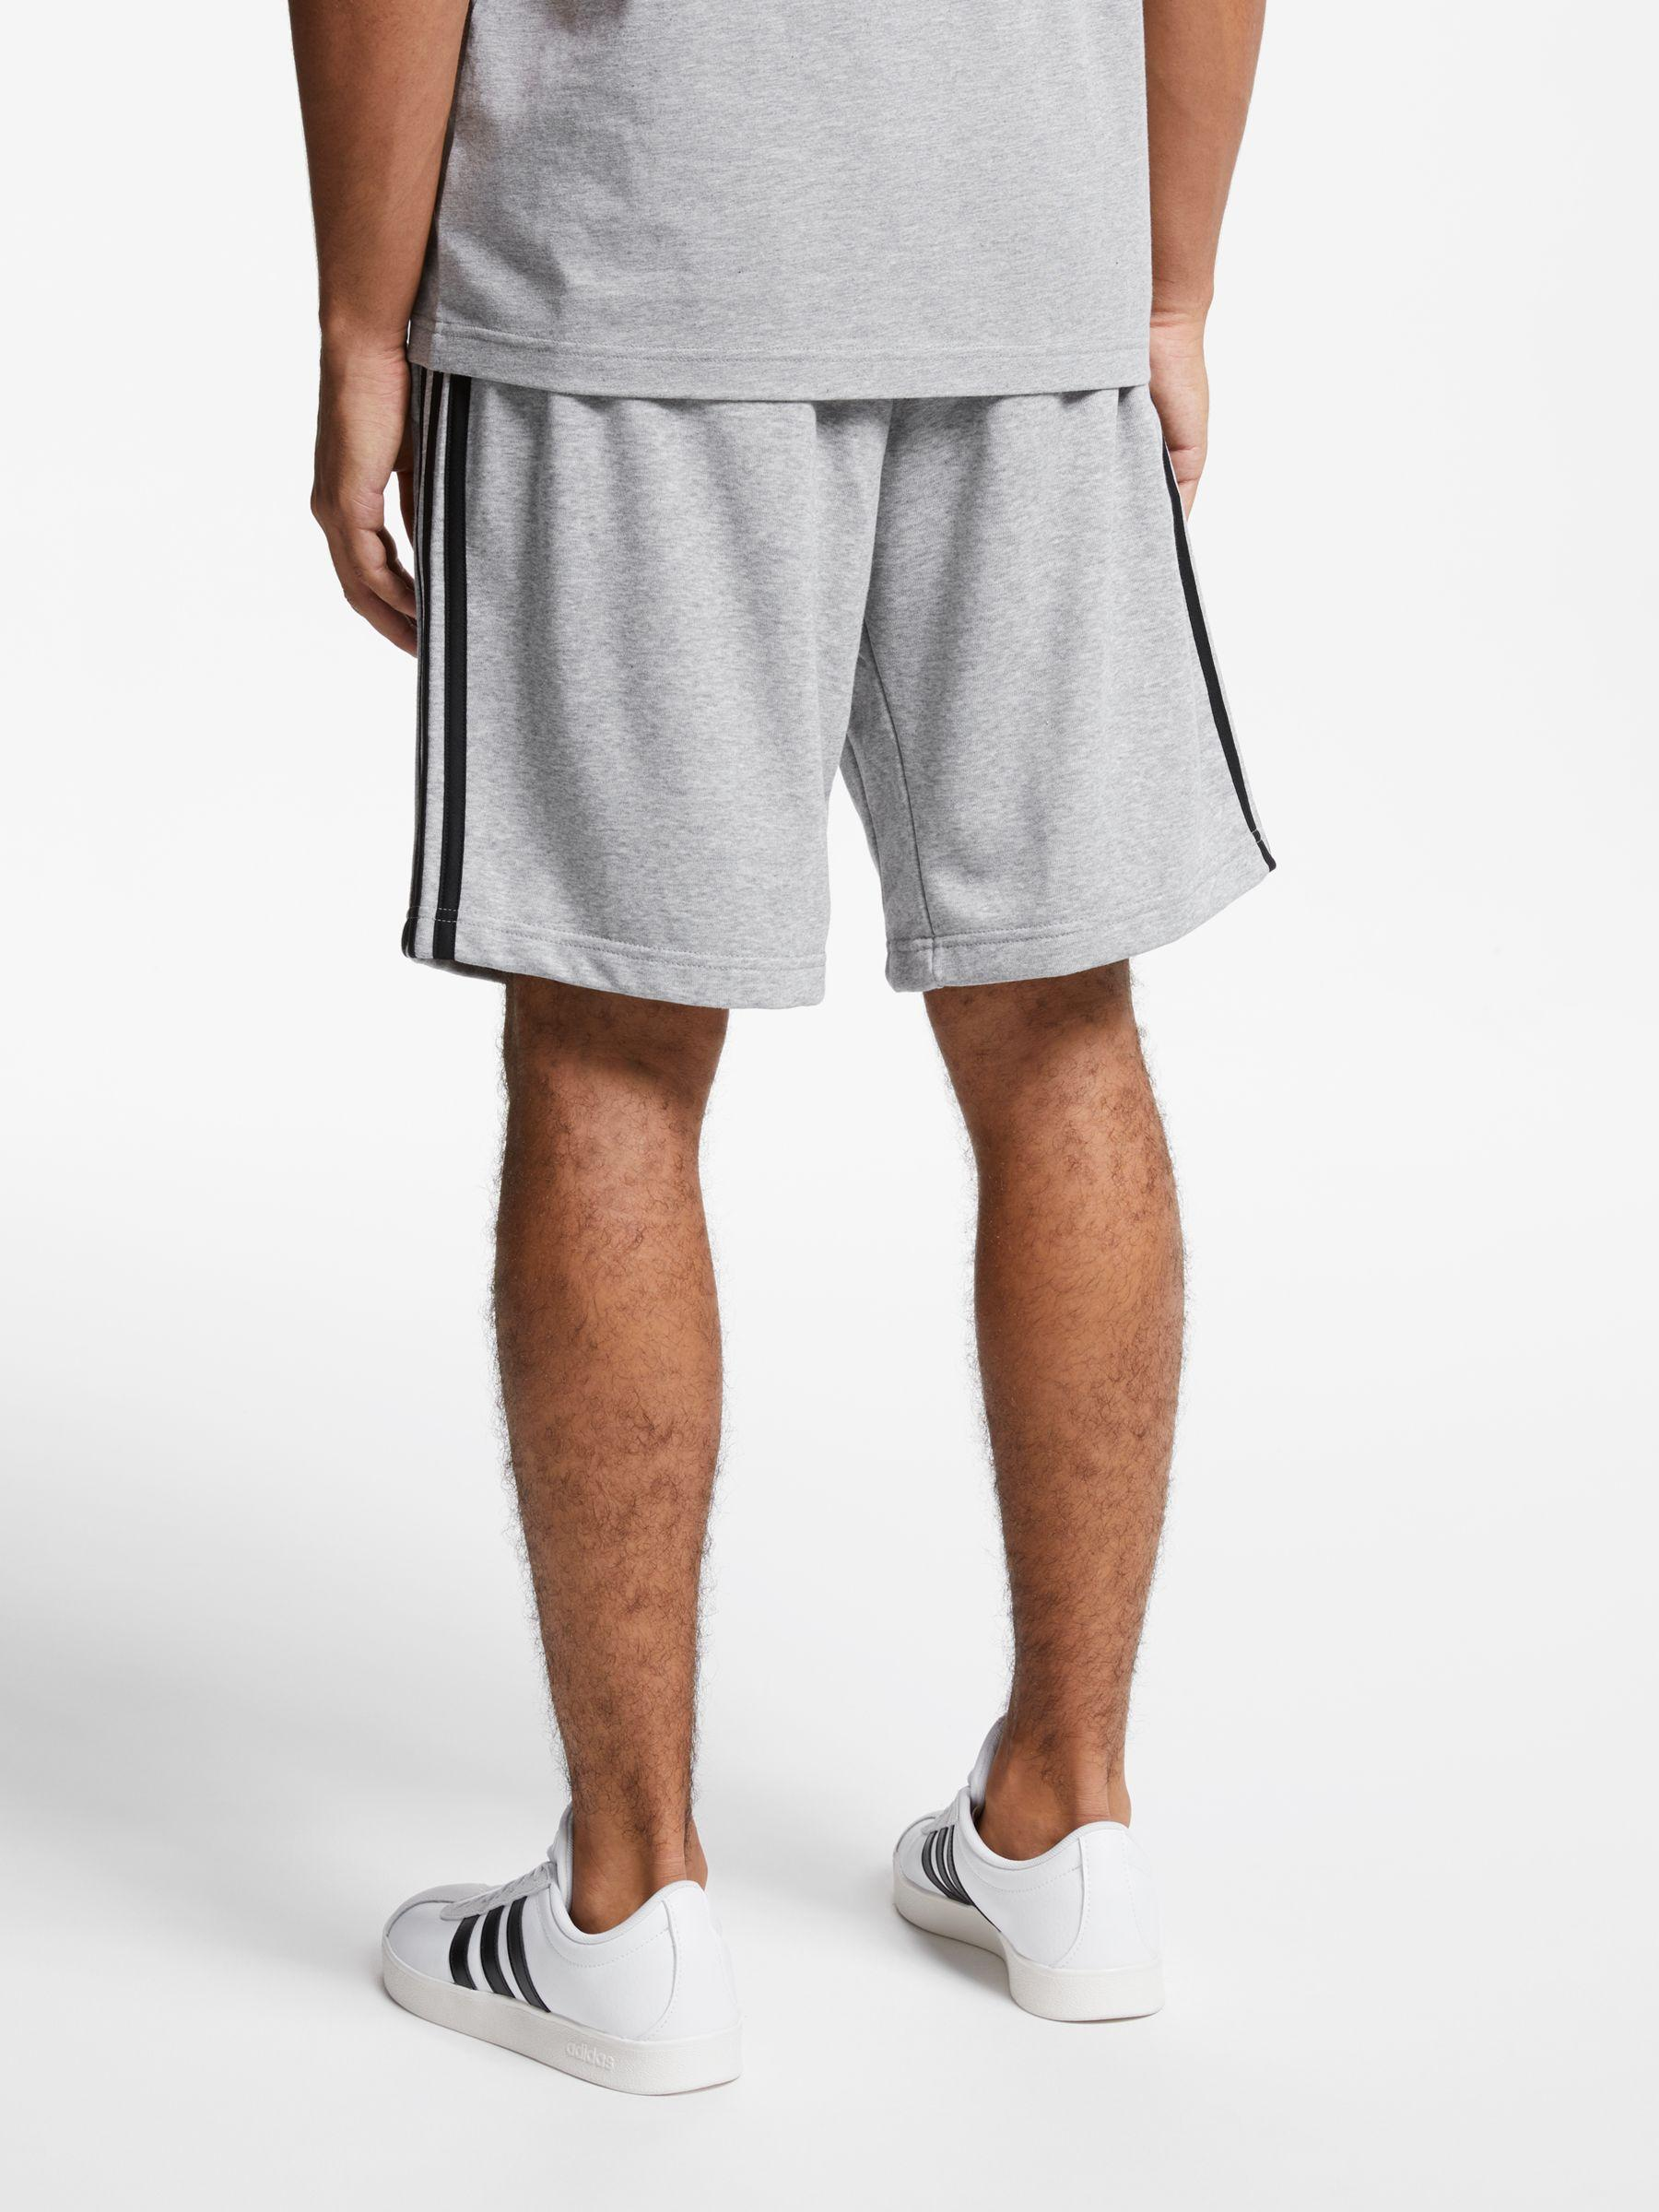 Gray Shorts 3 Men Essentials Stripes For Terry French Adidas In Lyst XqaUwX0